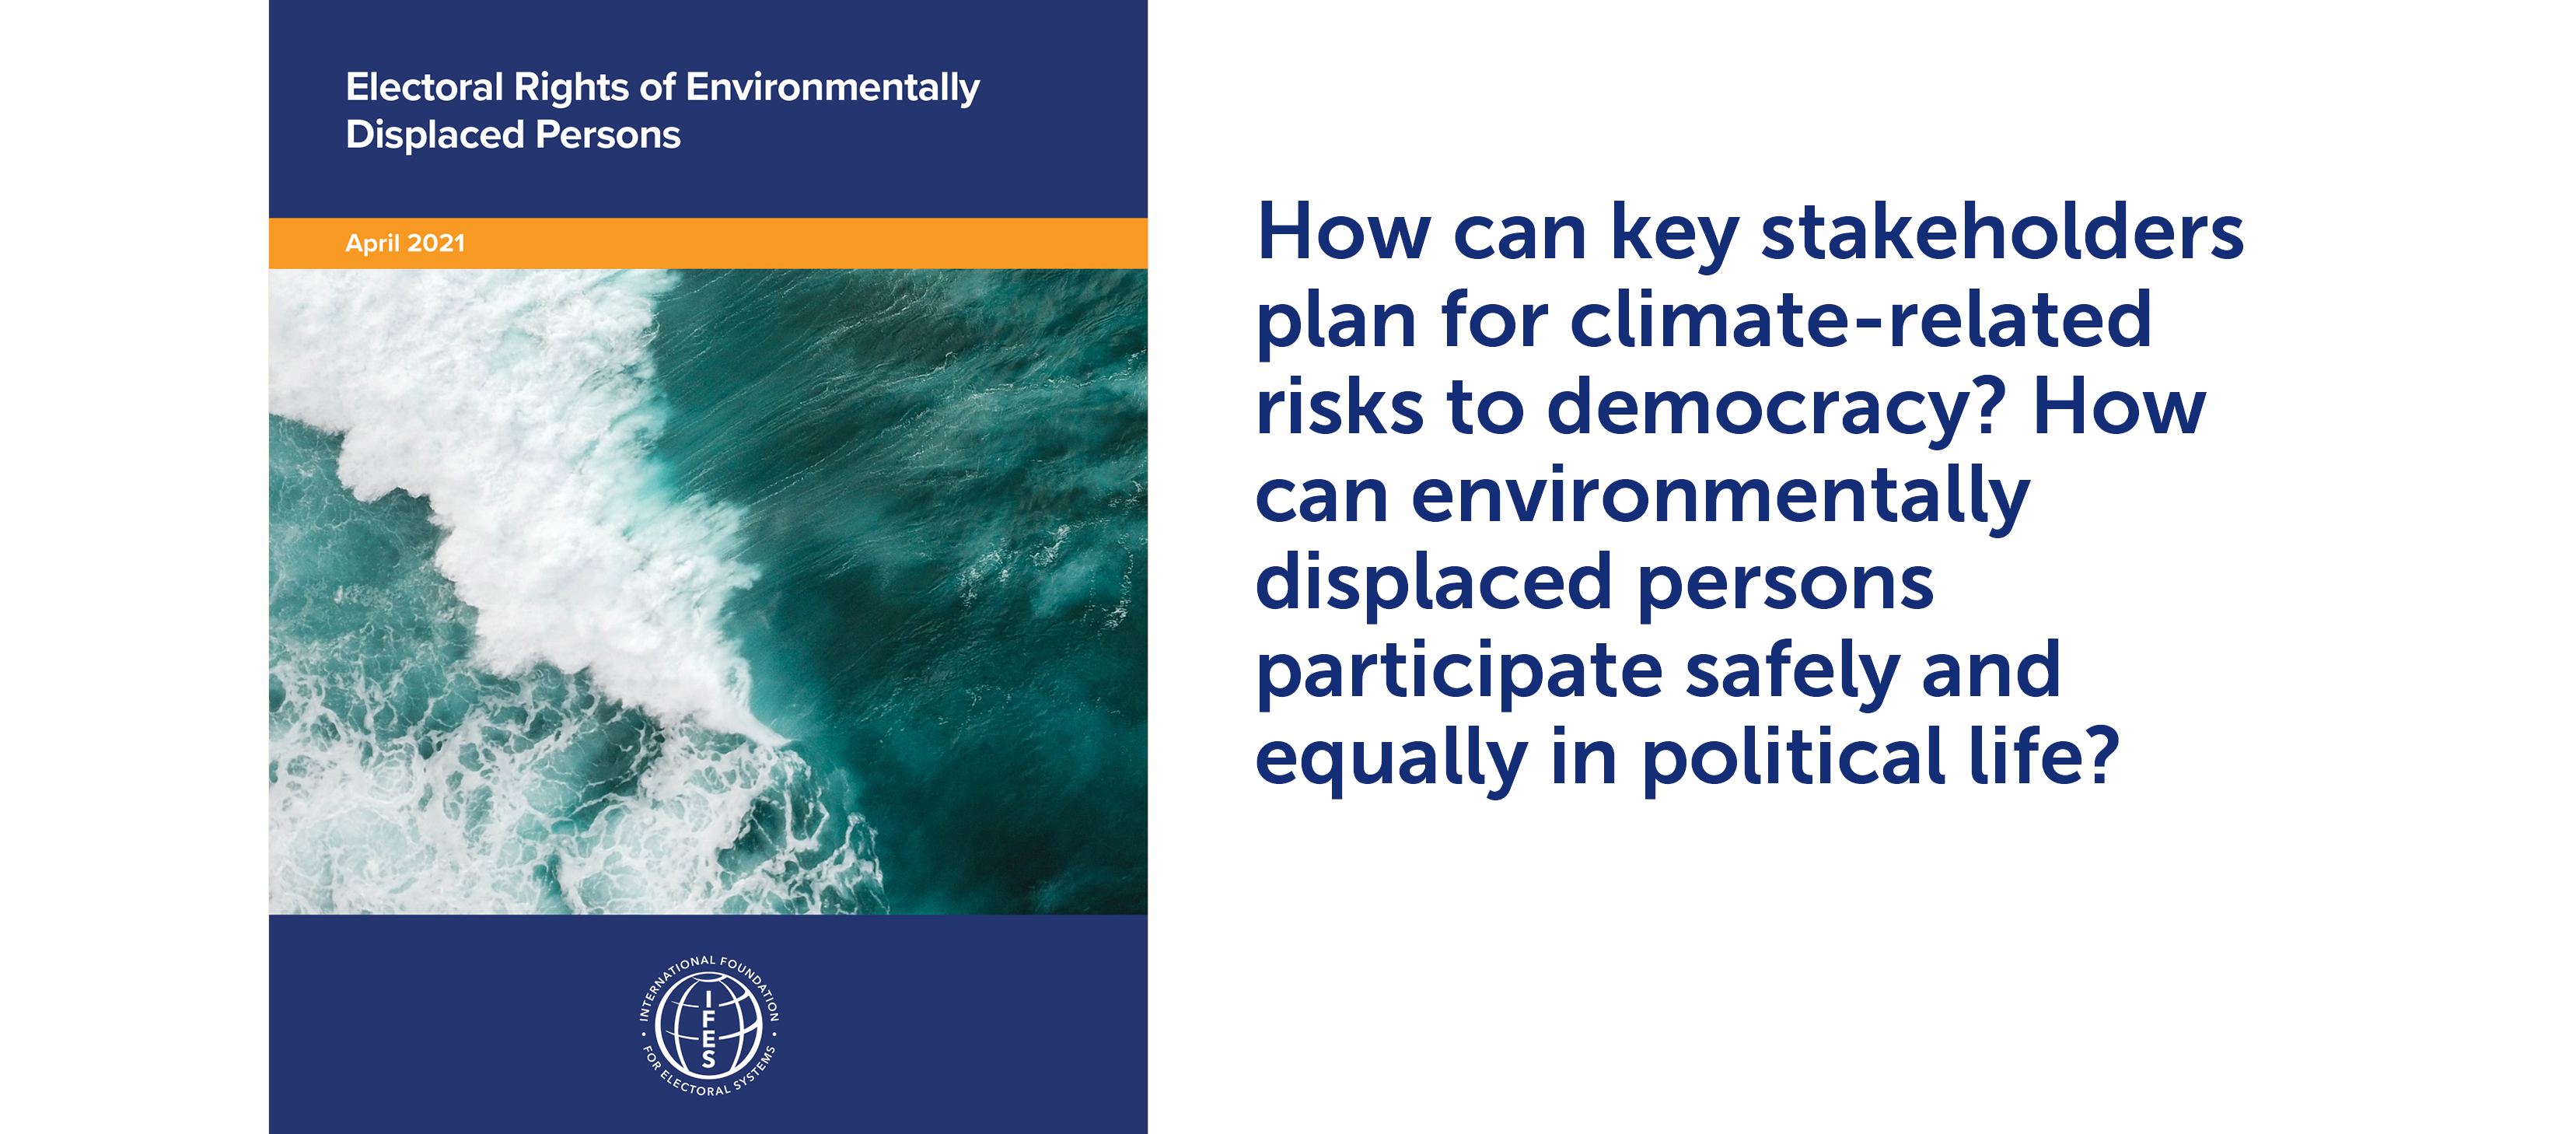 "Electoral Rights of Environmentally  Displaced Persons cover + ""How can key stakeholders plan for climate-related risks to democracy? How can environmentally displaced persons participate safely and equally in political life?"""